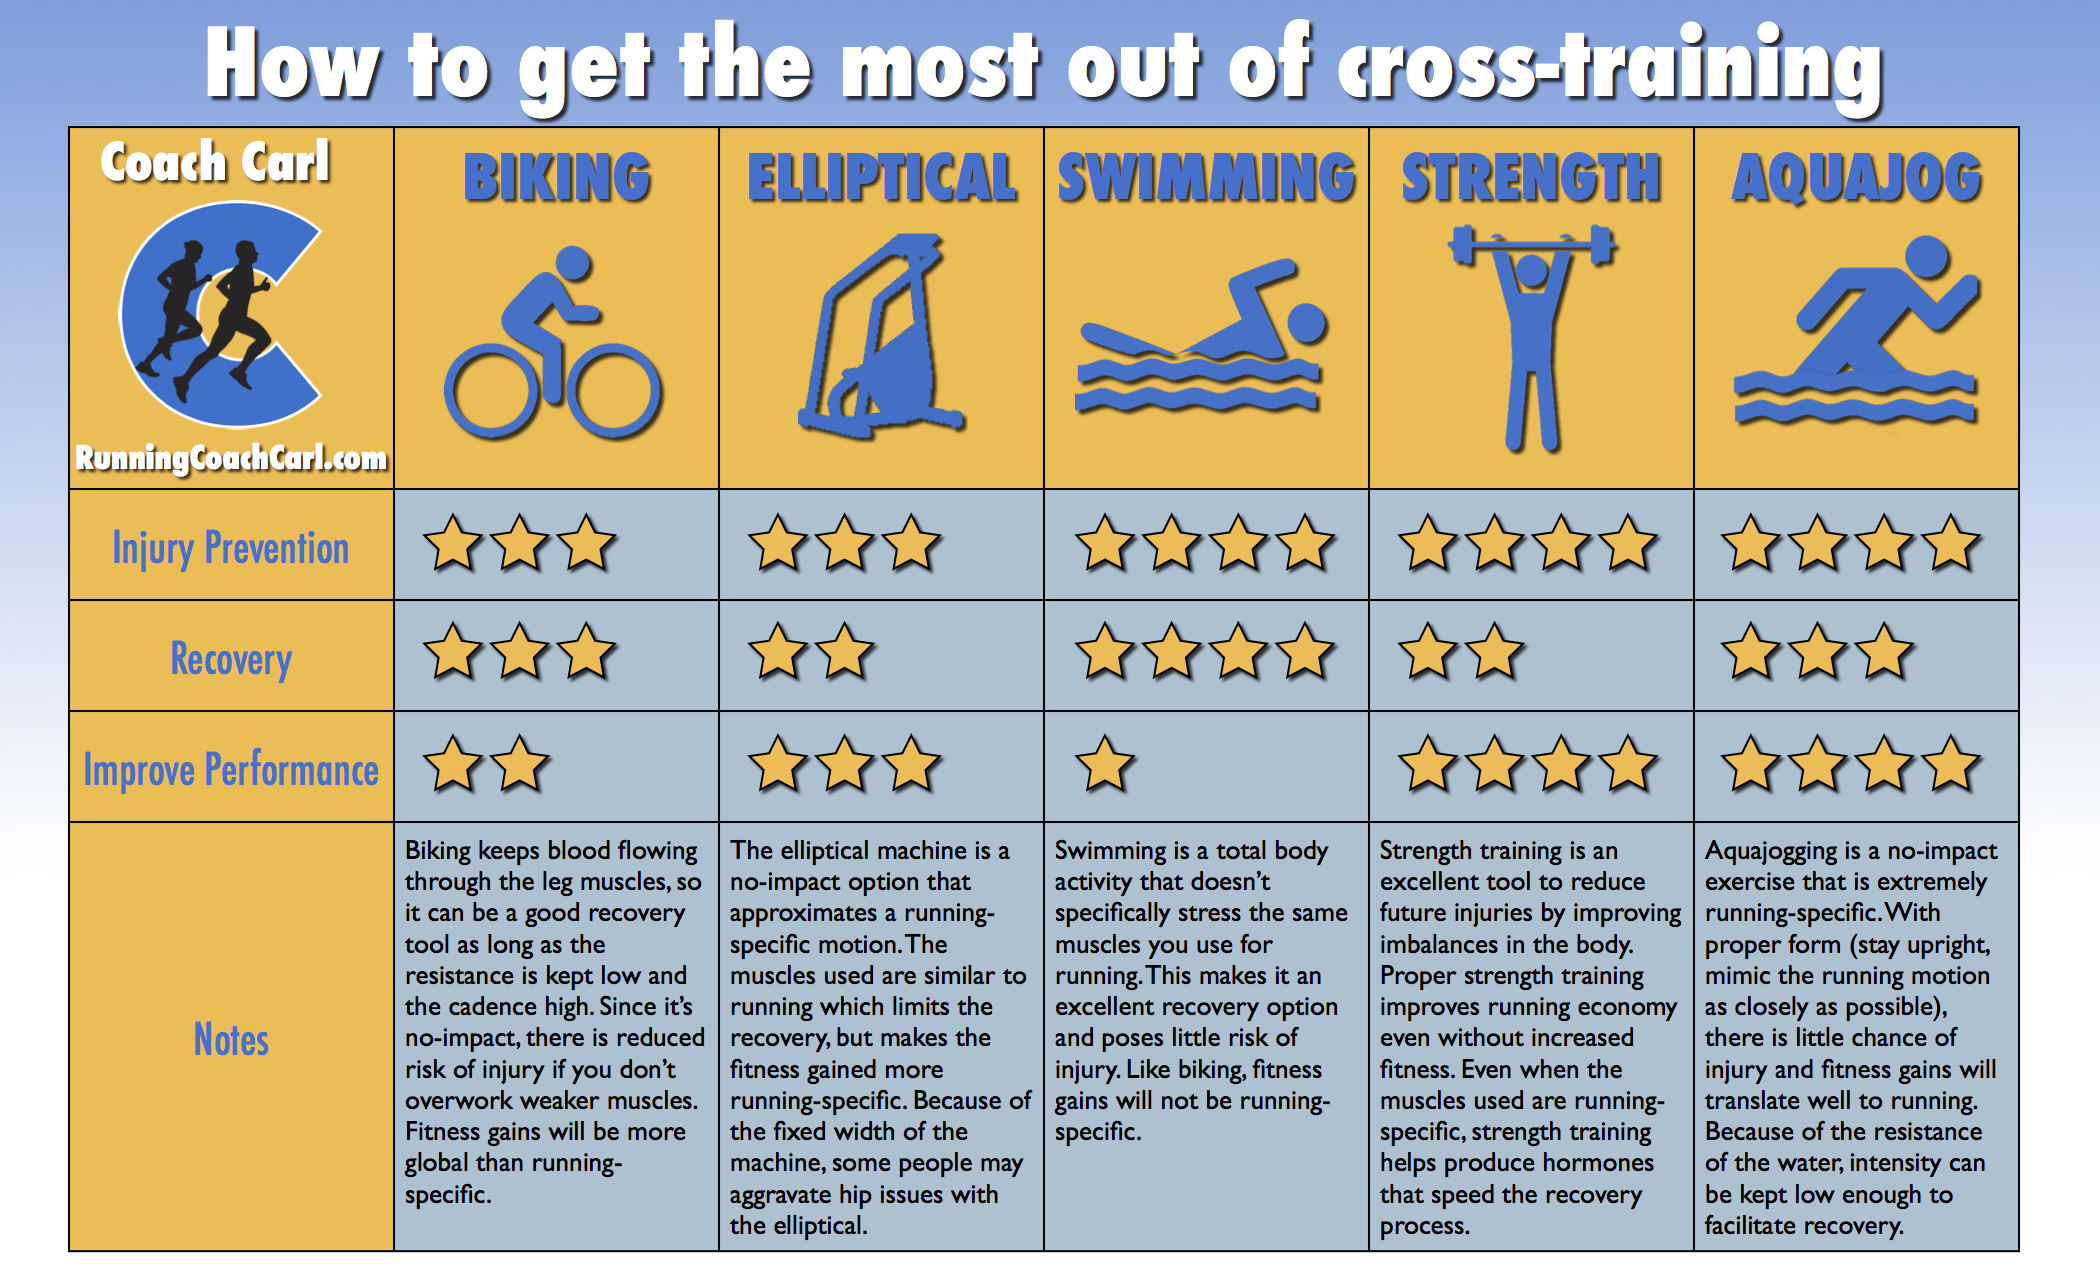 disadvantages of cross training A cross-sectional study is a tool used by researchers to gather data consisting of multiple variables at a specific point in time cross-sectional studies can be done across all industries, but.